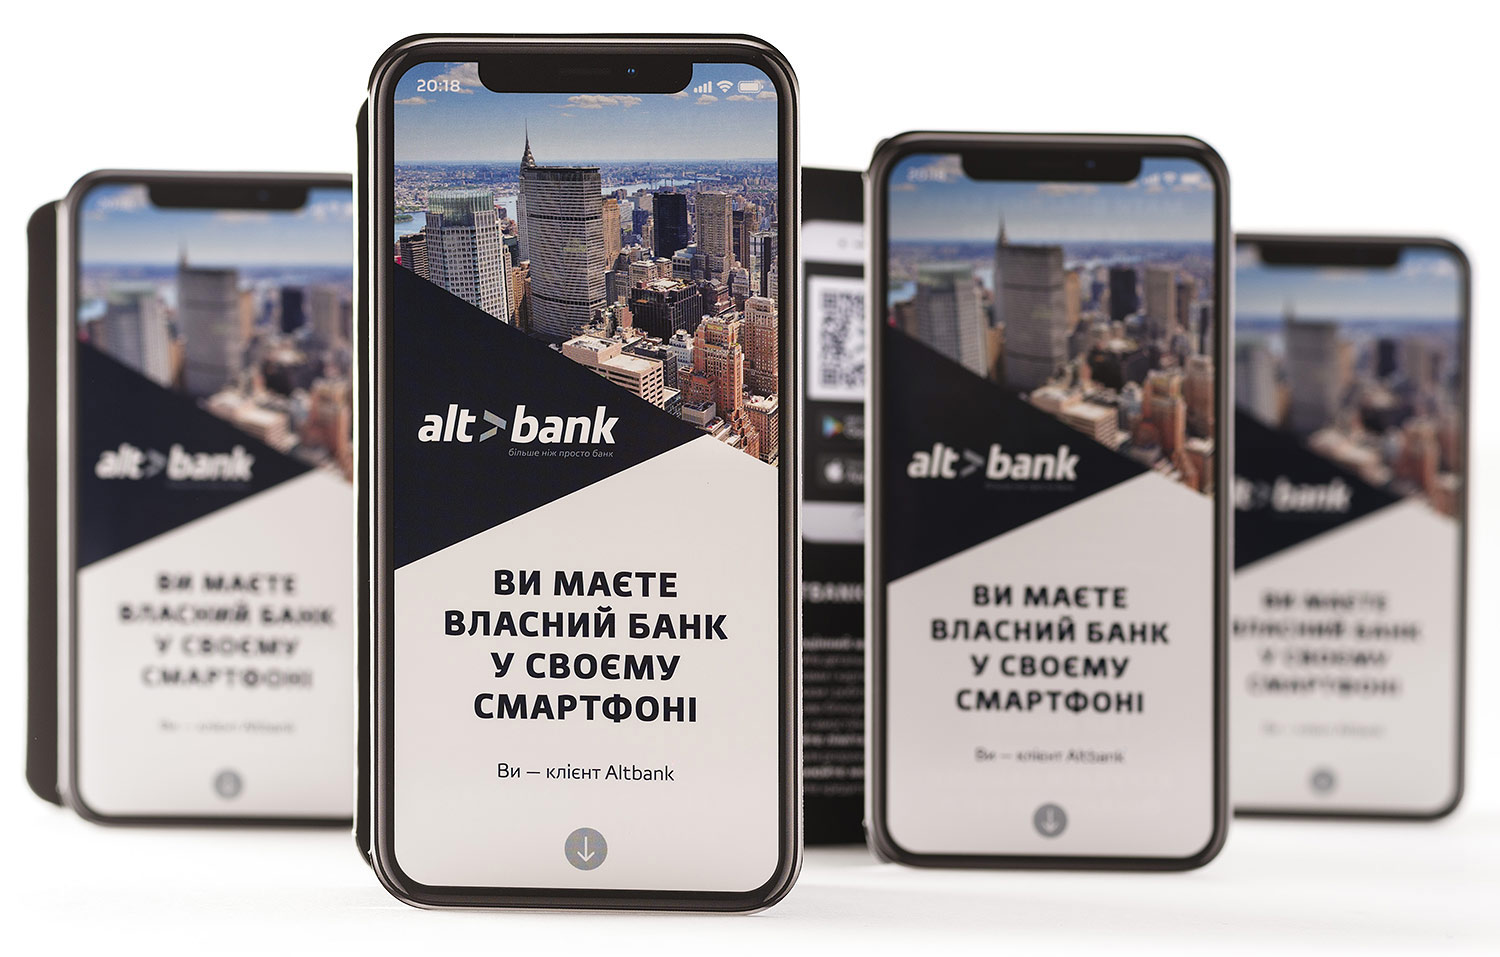 A booklet in the form of a smartphone. Bank booklet design.